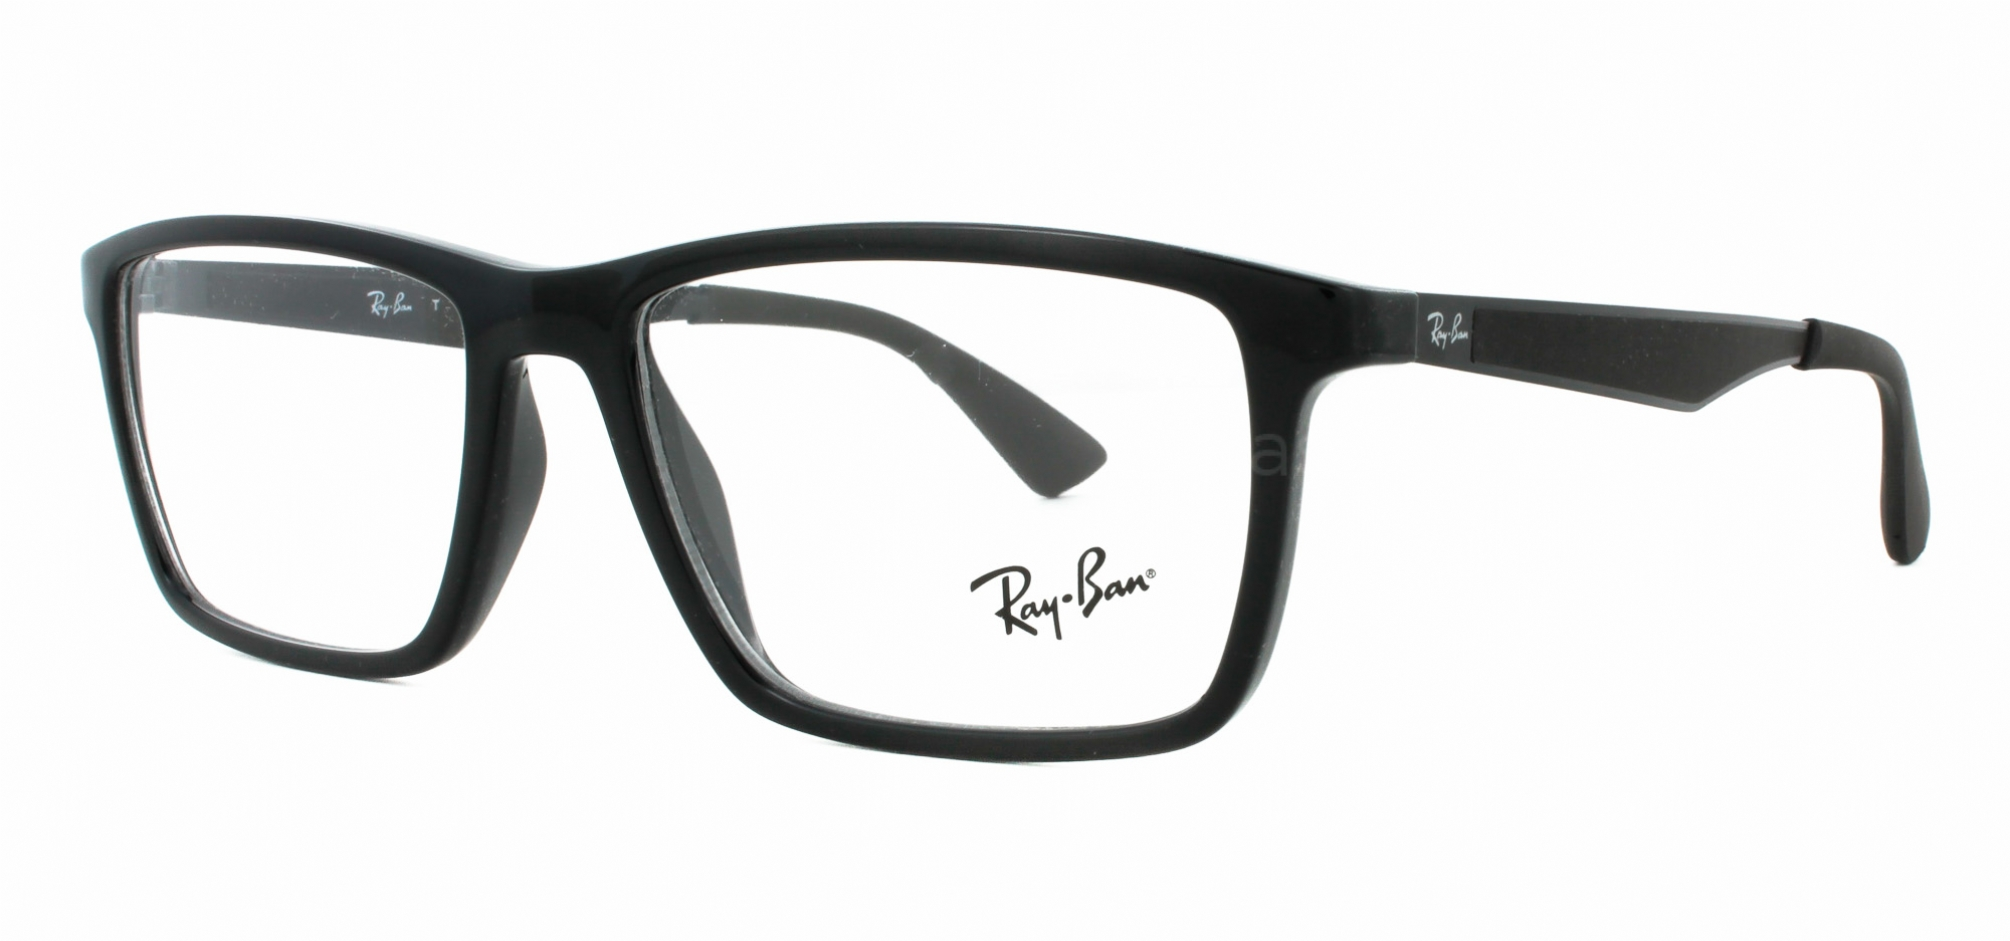 lunette de vue ray ban homme optic 2000